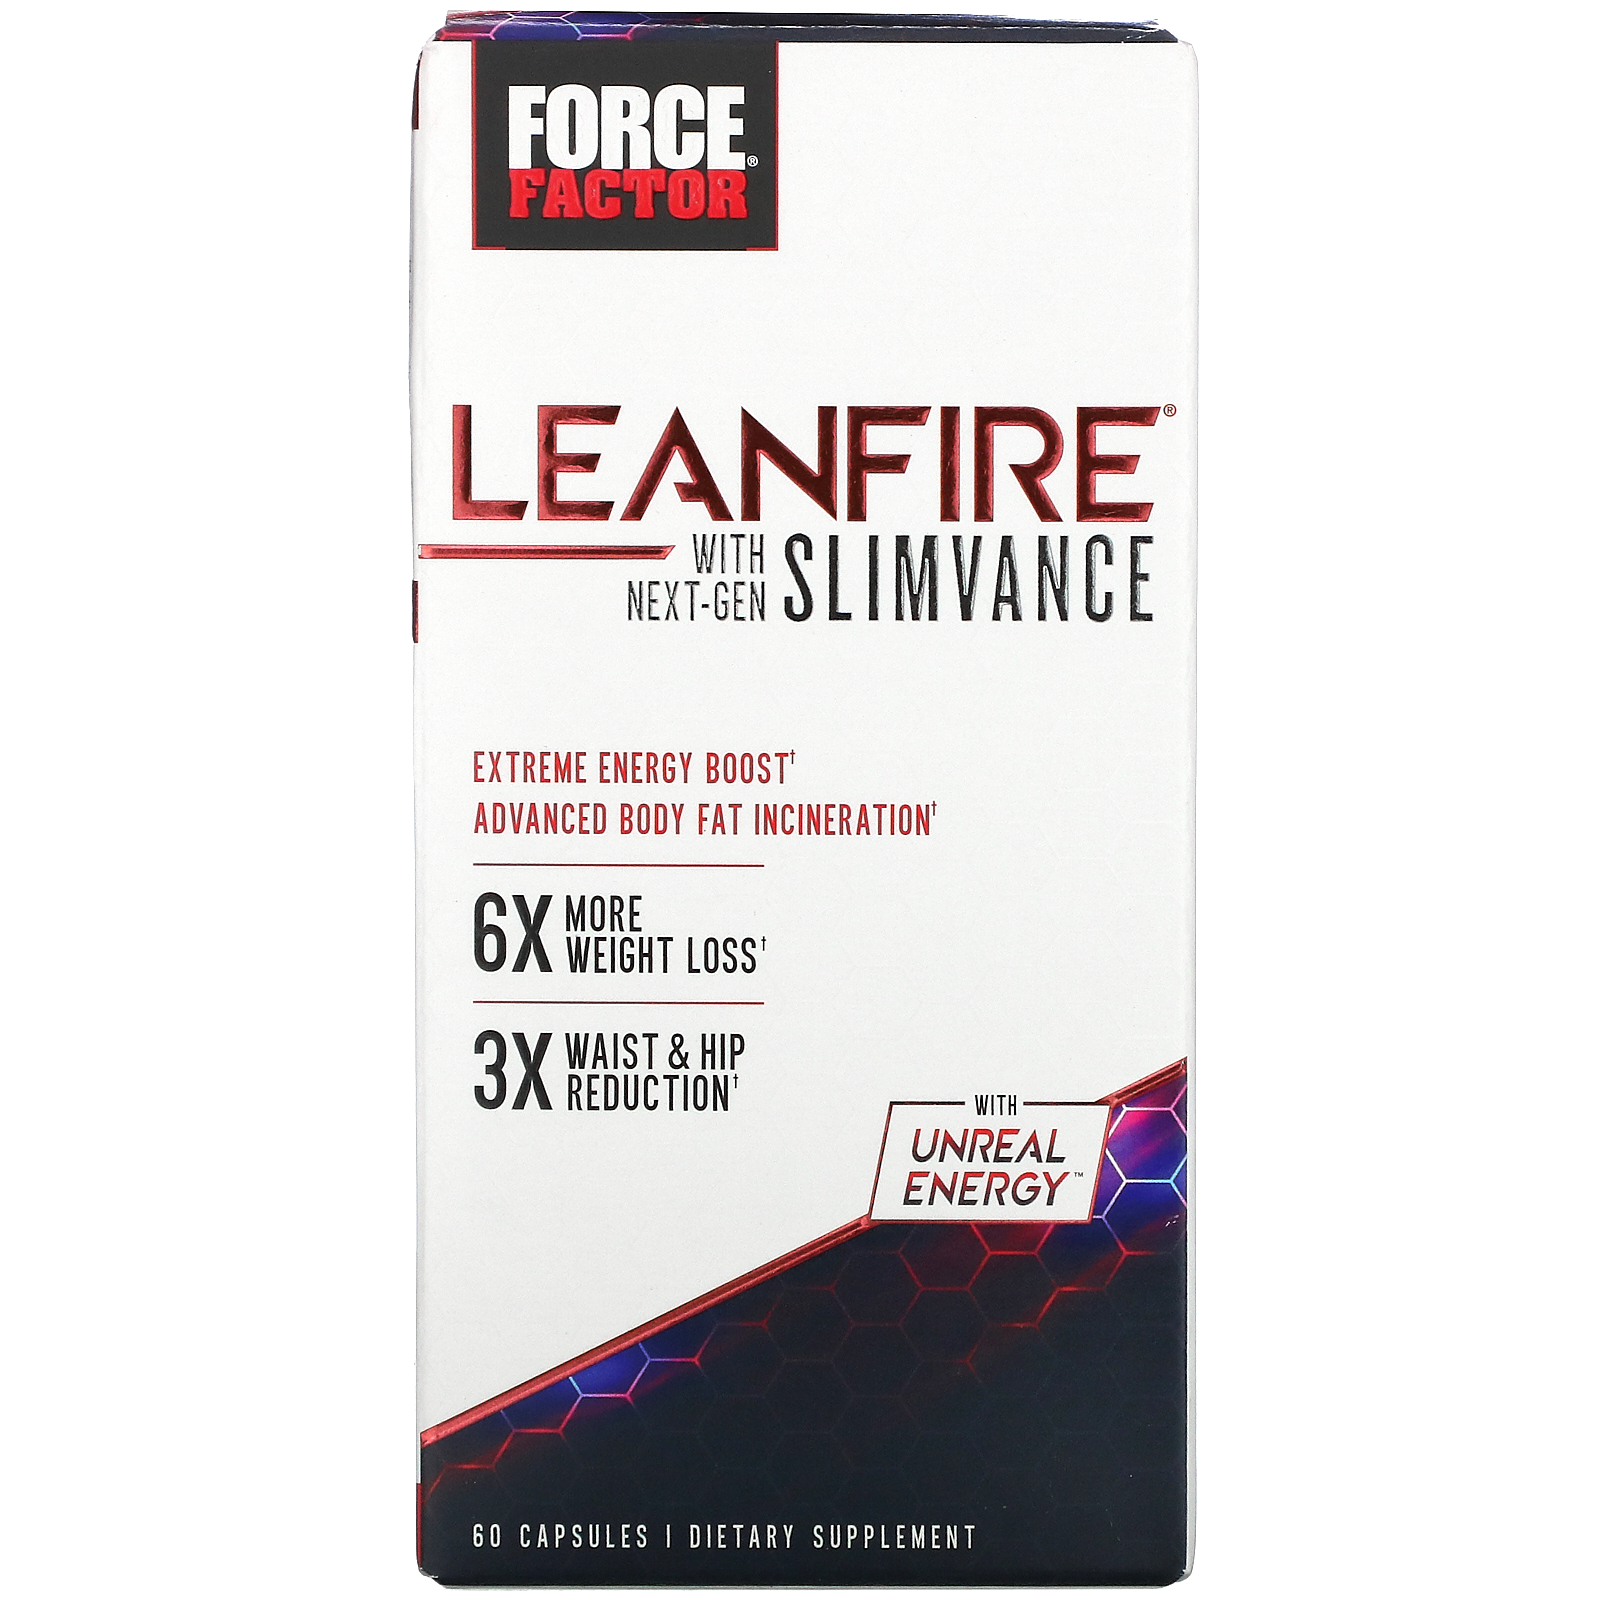 Force Factor, LeanFire with Next-Gen SLIMVANCE, 60 Capsules